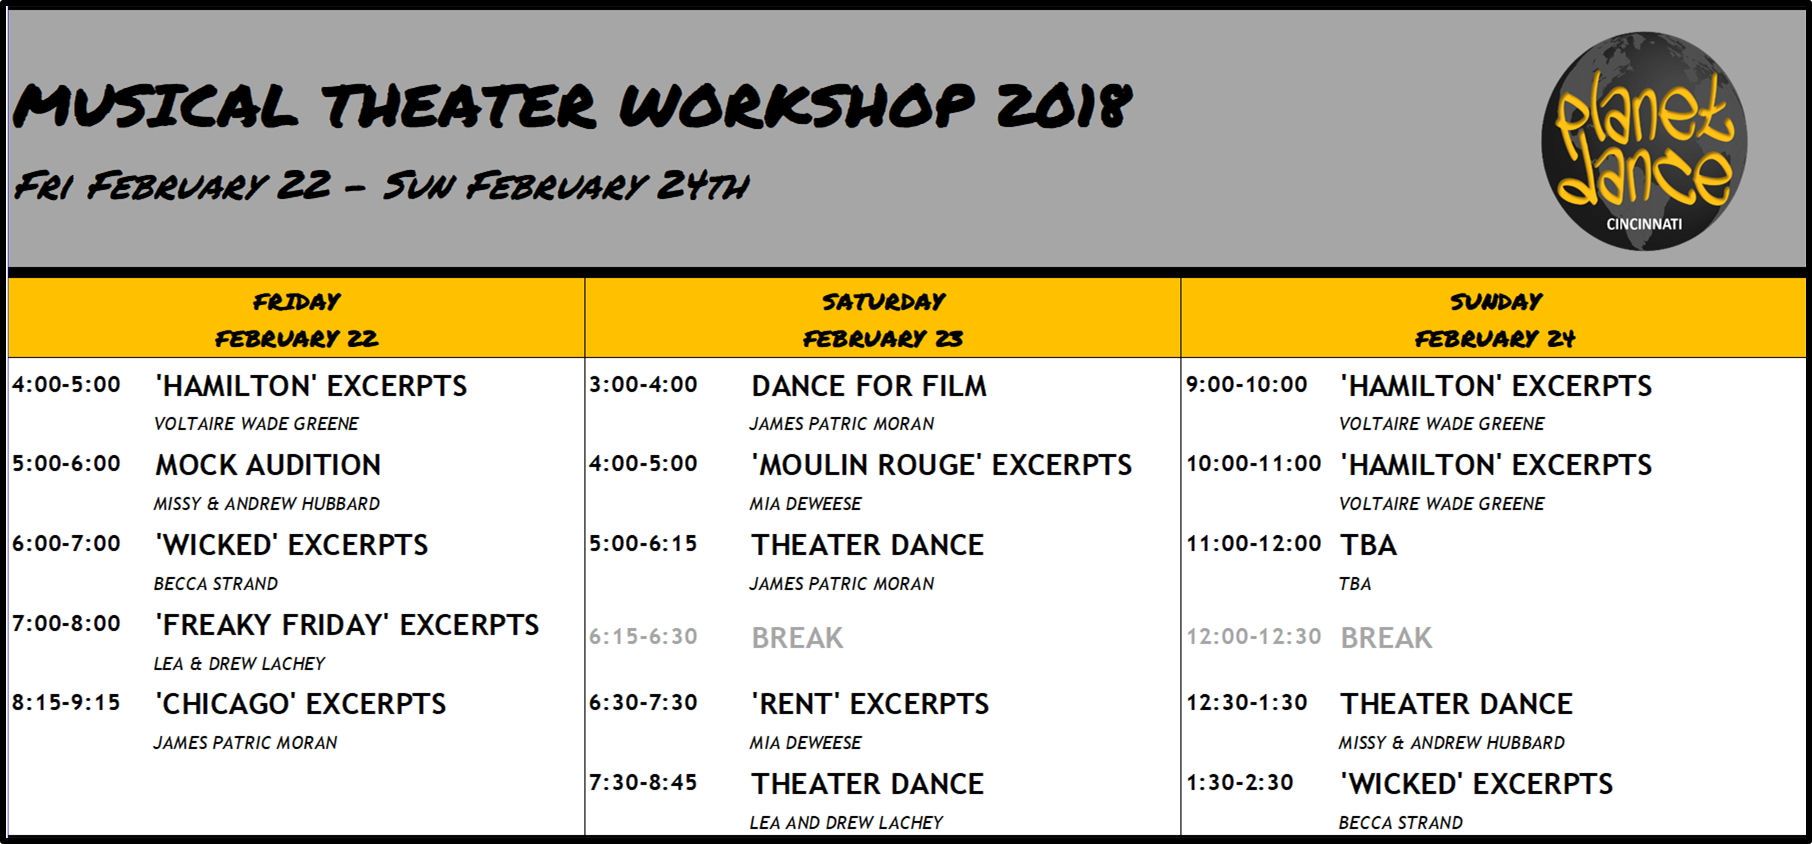 Musical Theater Workshop Schedule Image 2019.png